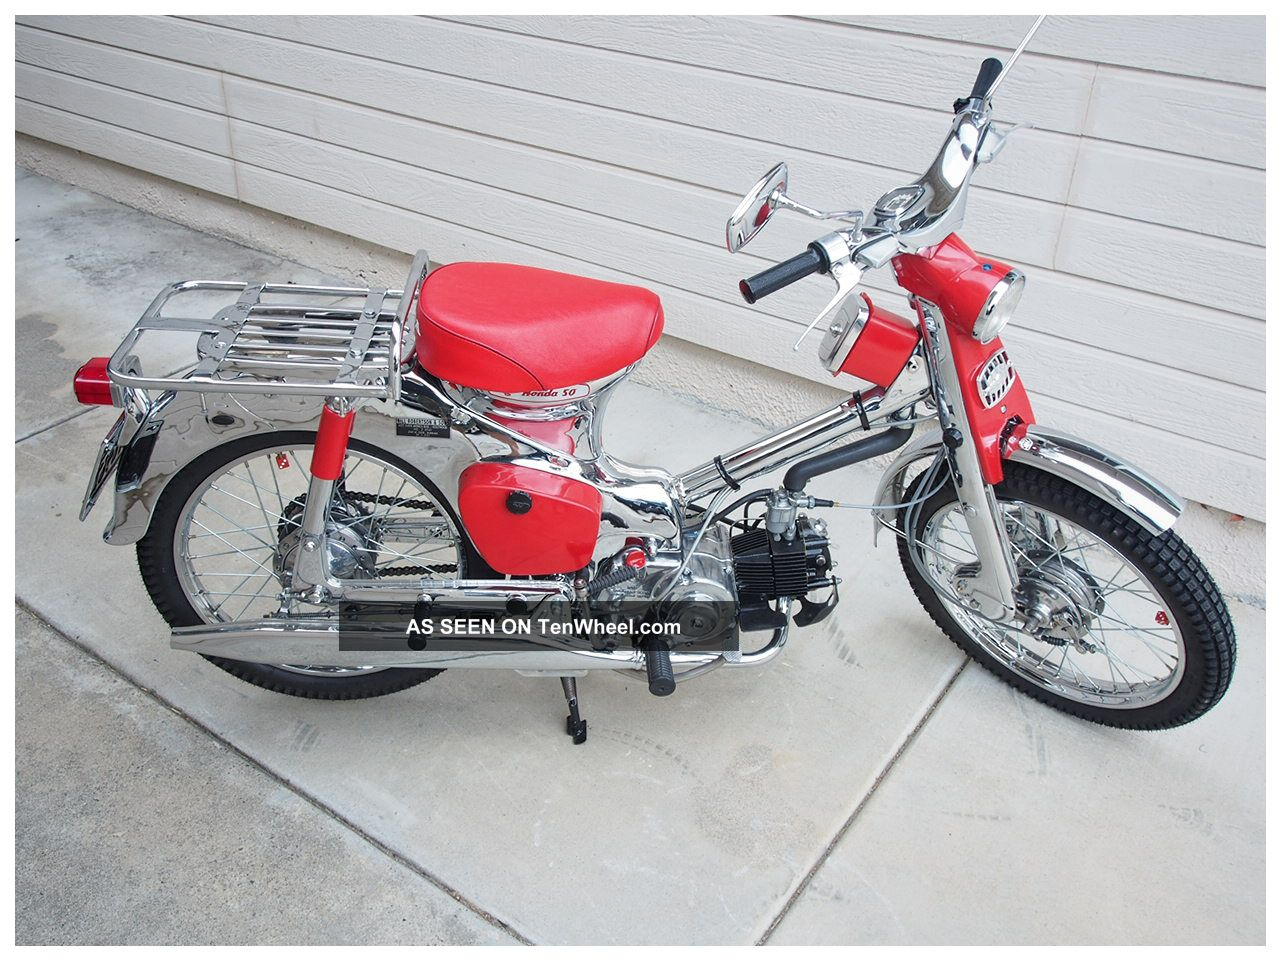 1962 Honda C100 Cub 50 Chrome Promotional Wiring Diagram